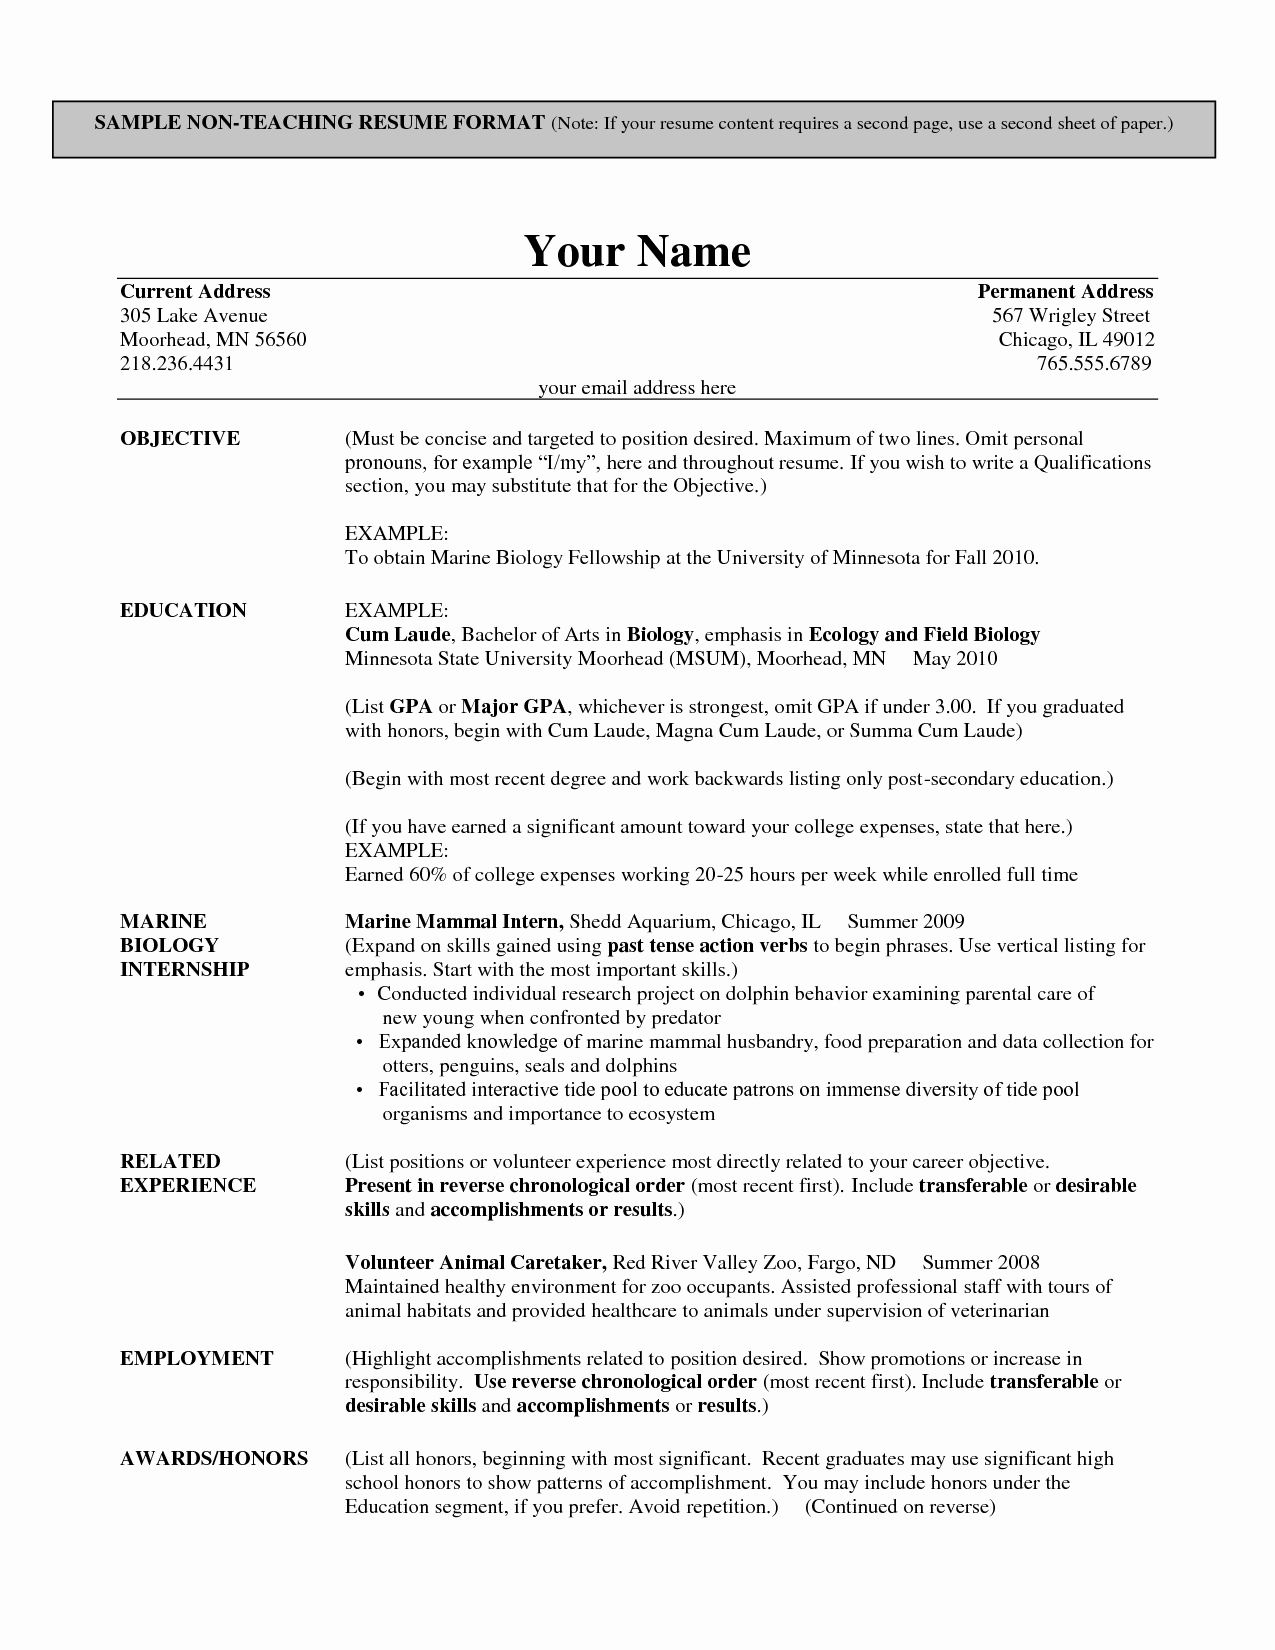 Resumes For Employers